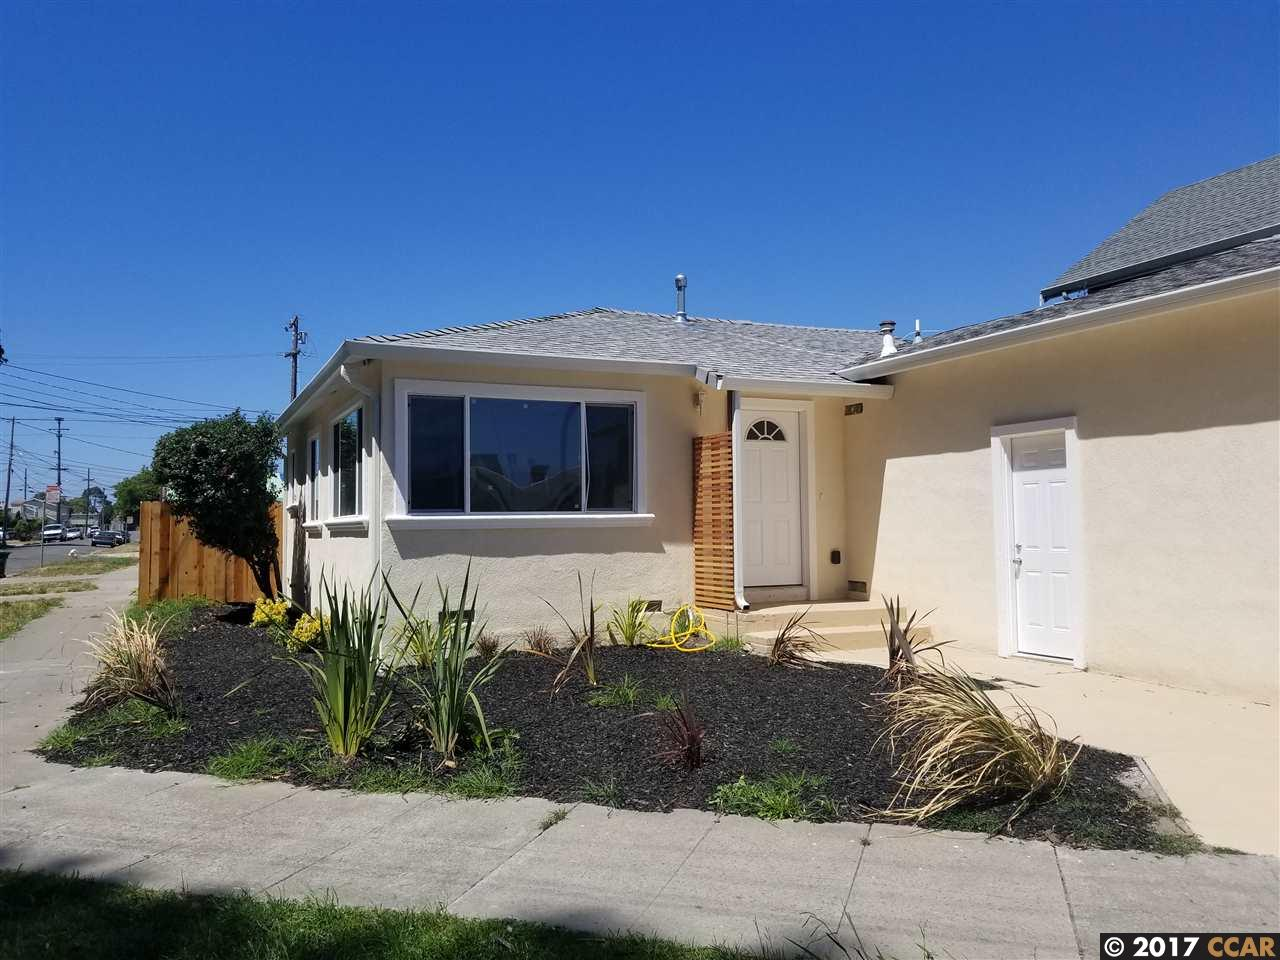 266 S.33RD, RICHMOND, CA 94804